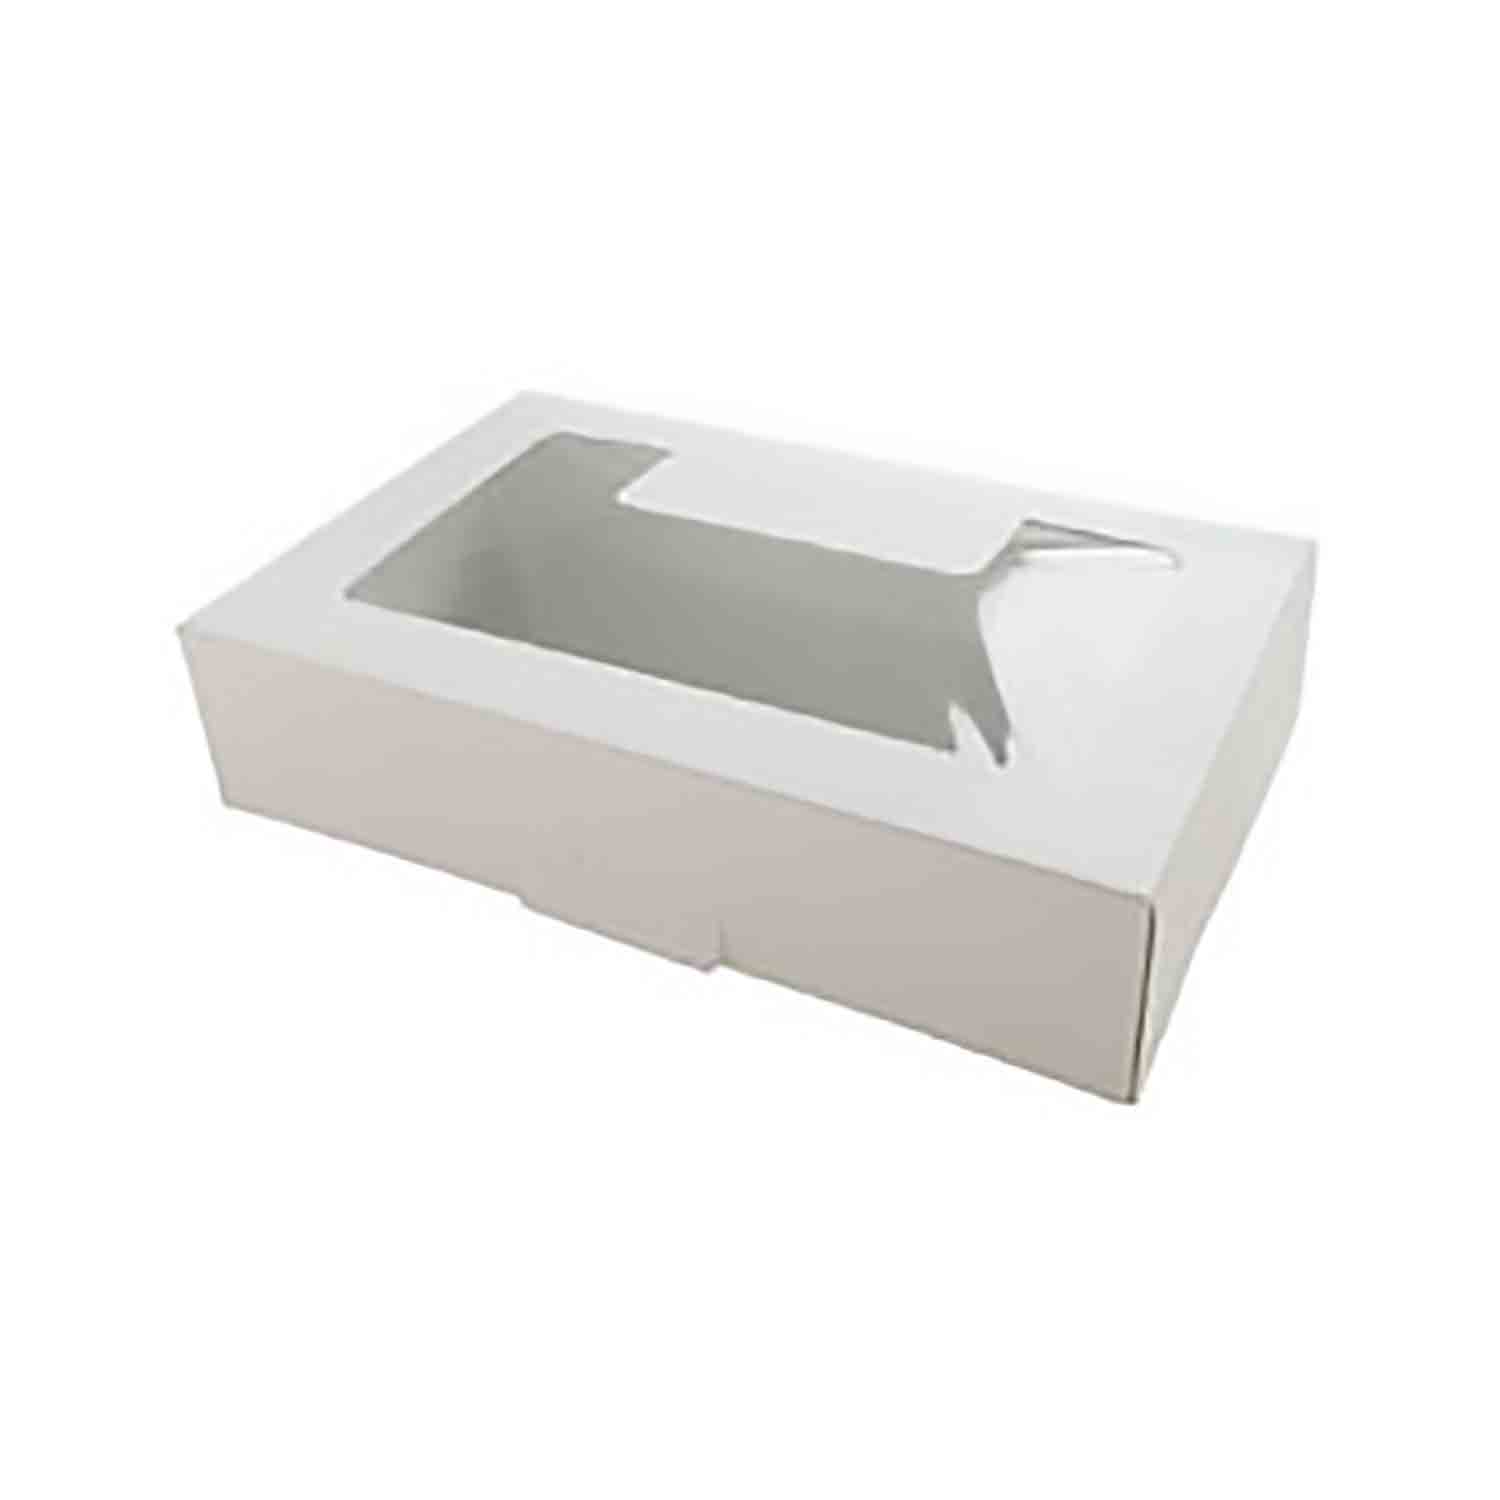 1 lb. White Cookie Box with Window